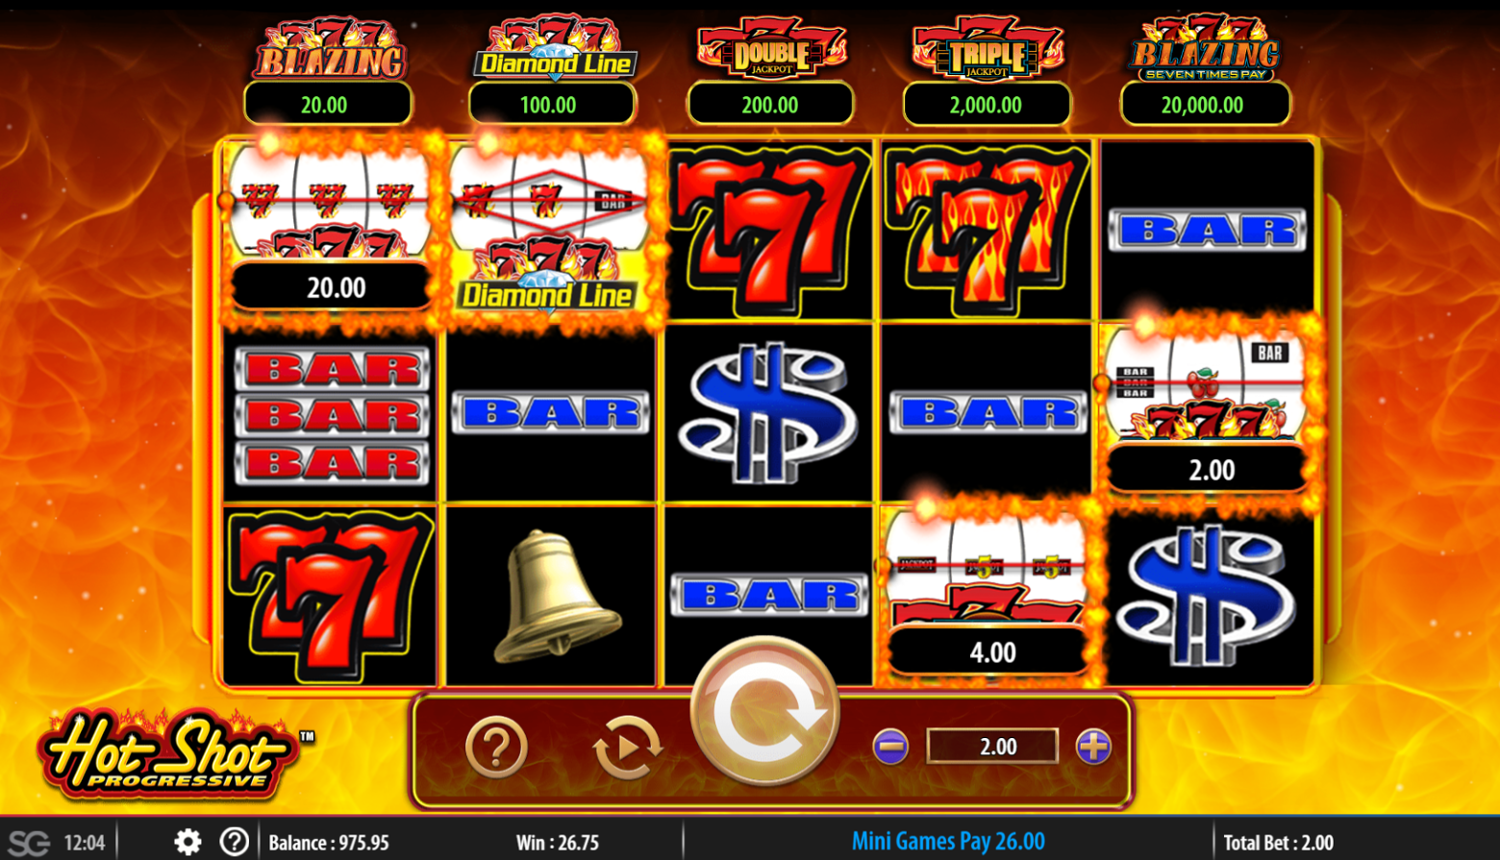 Hot Shot Progressive bonus game win